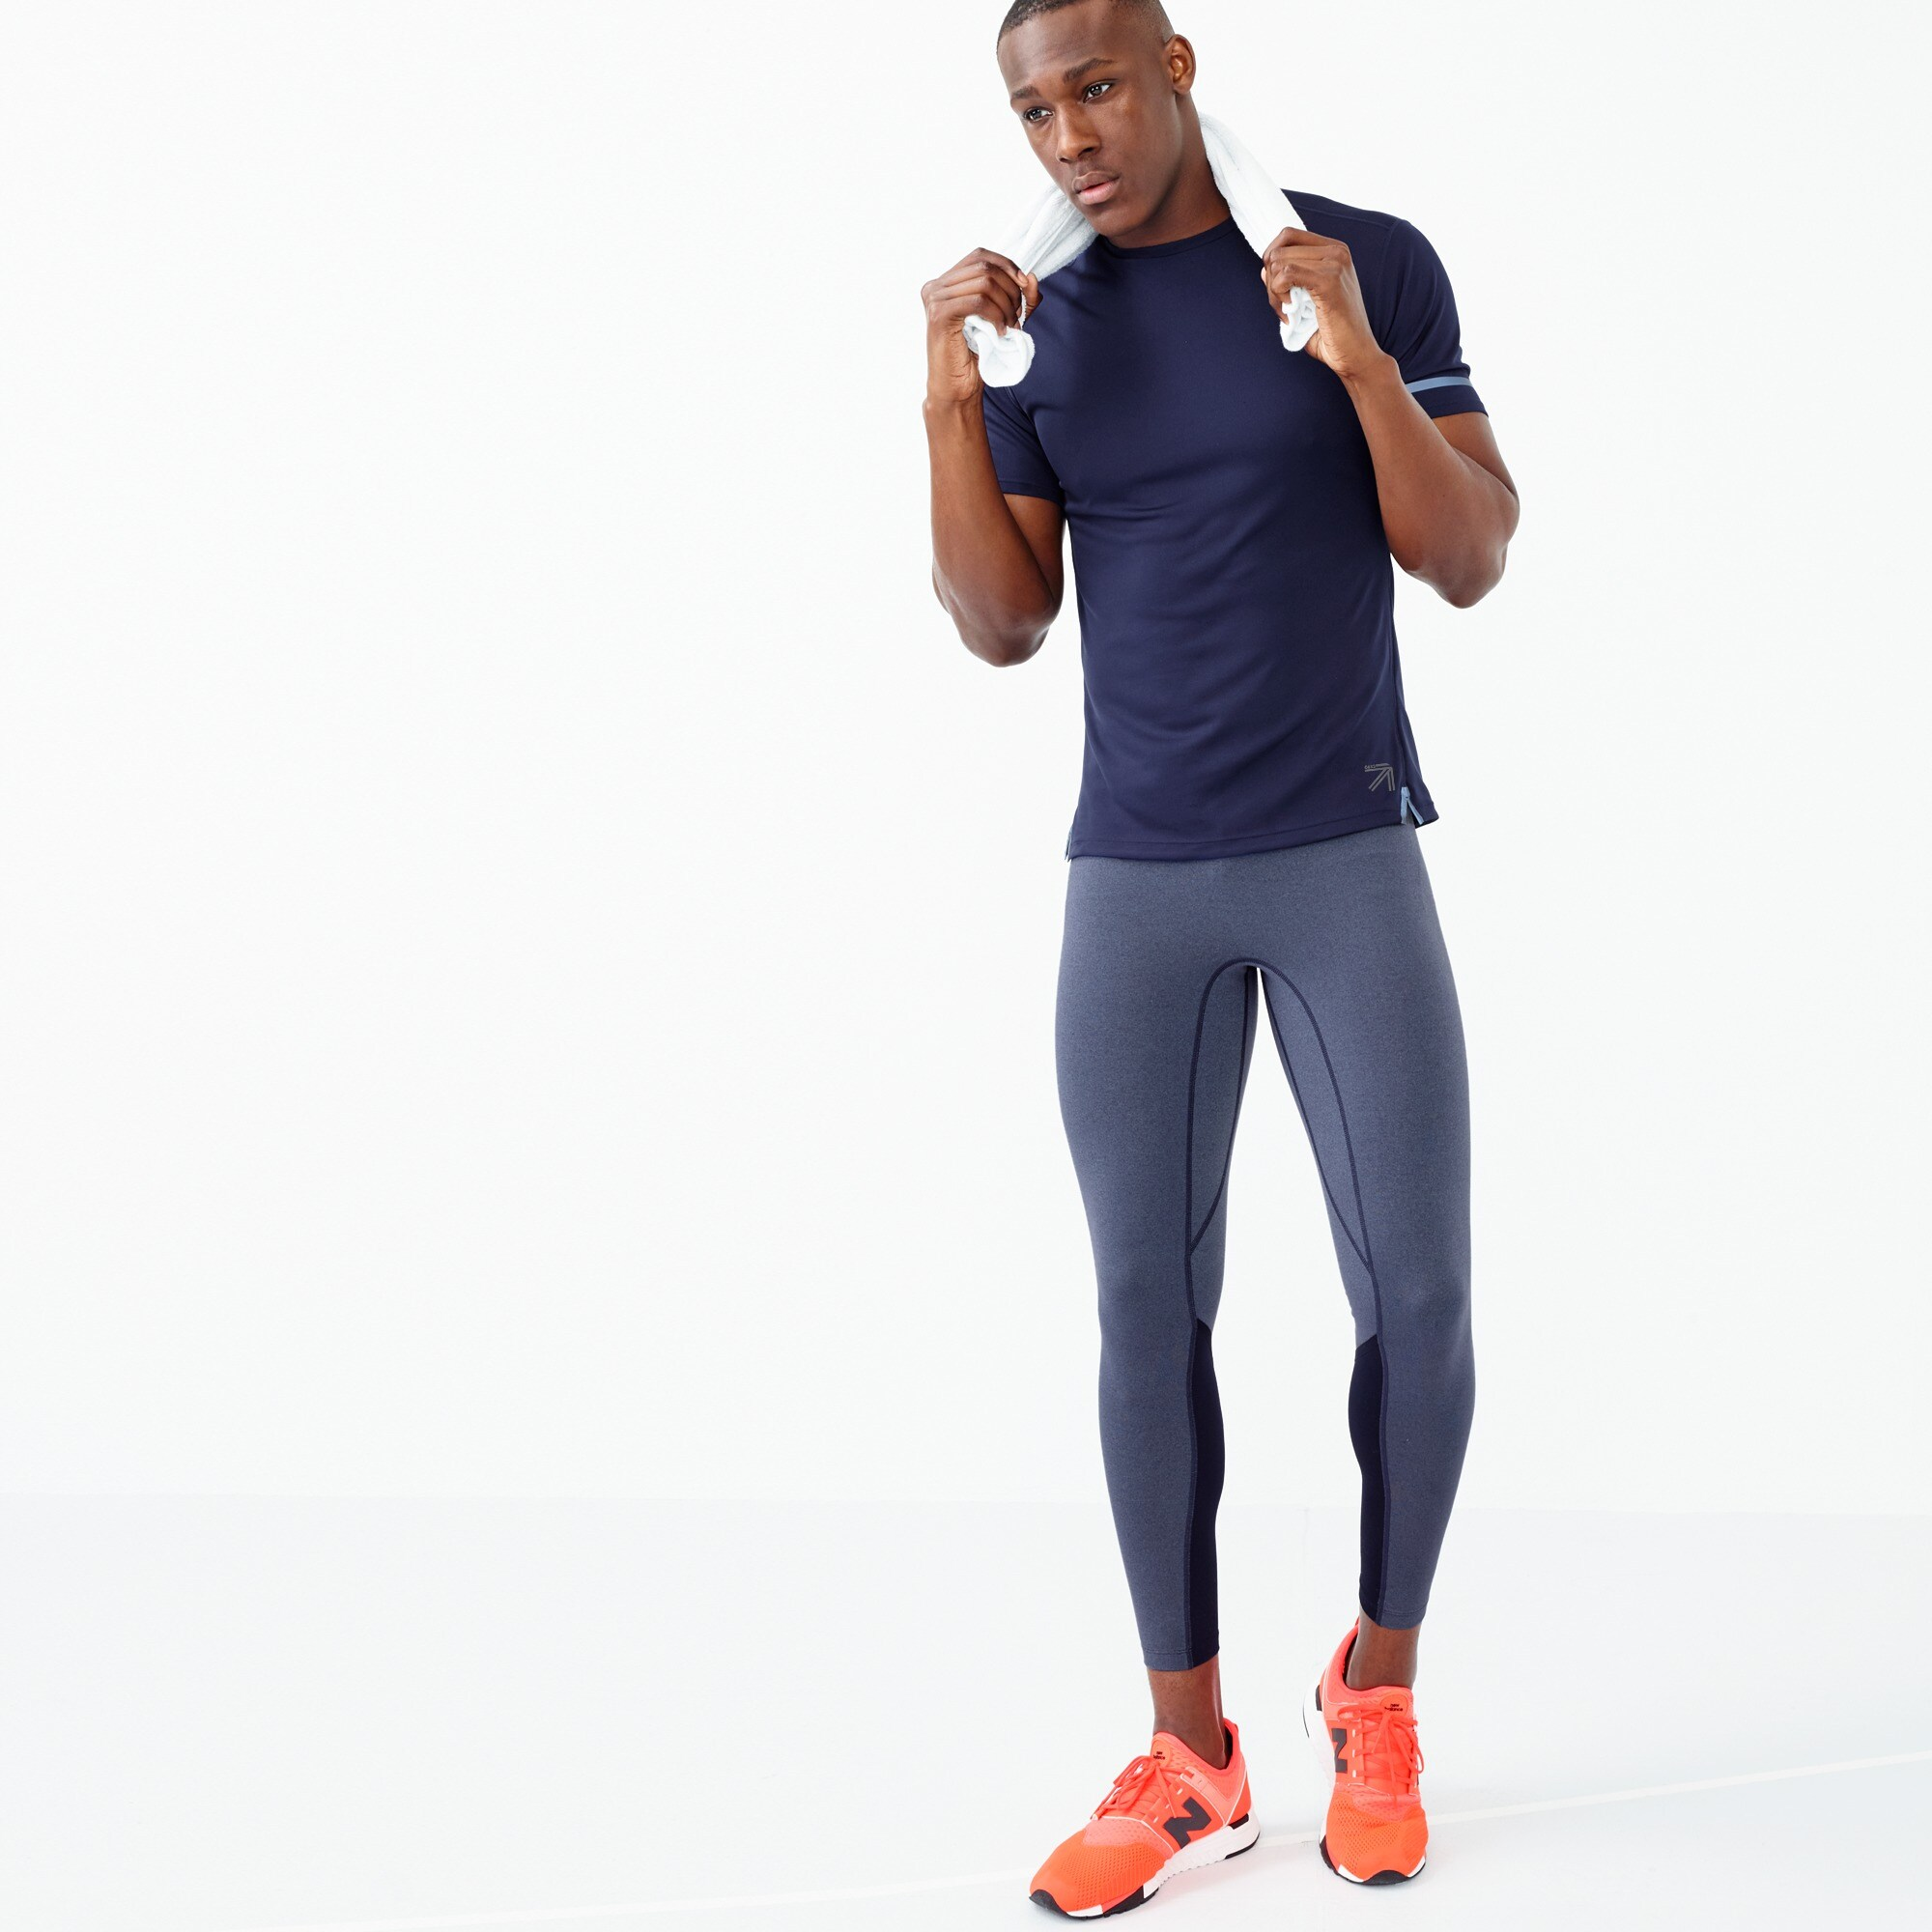 Image 2 for New Balance® for J.Crew compression tights